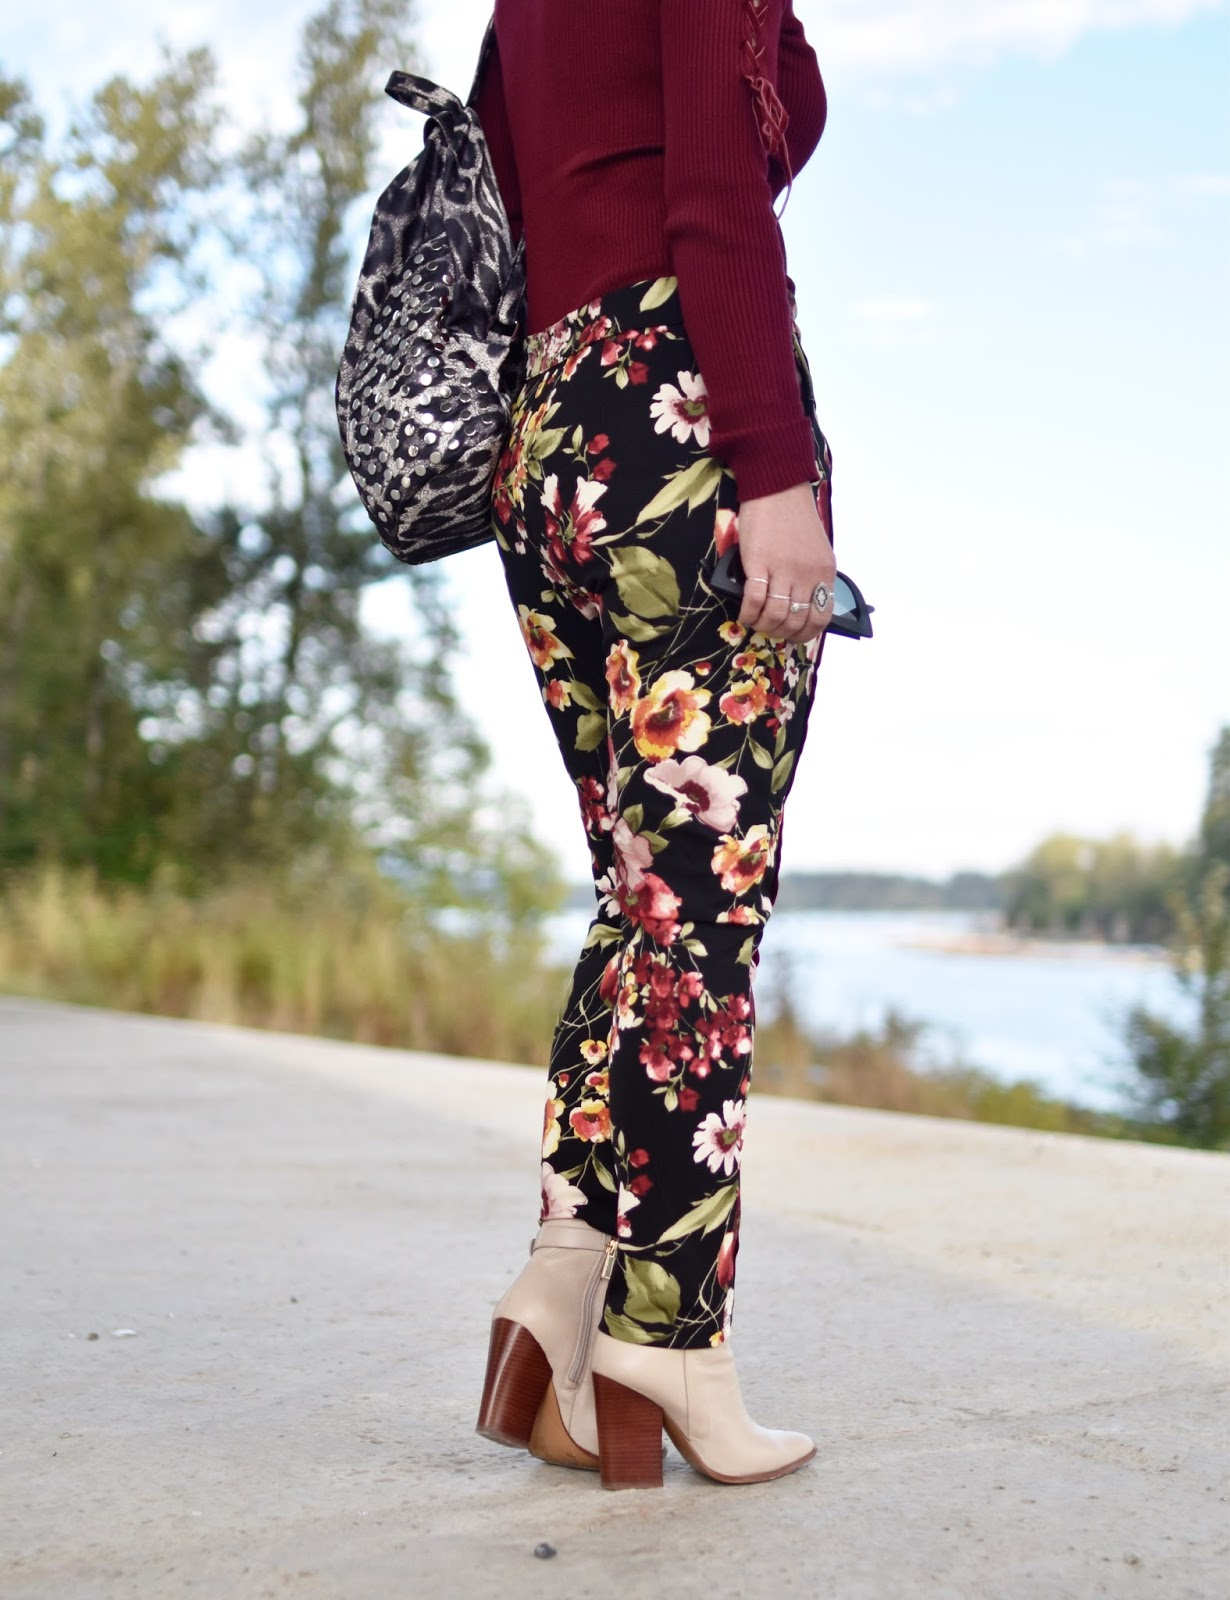 Monika Faulkner outfit inspiration - maroon sweater, floral trousers, ivory booties, leopard-patterned backpack